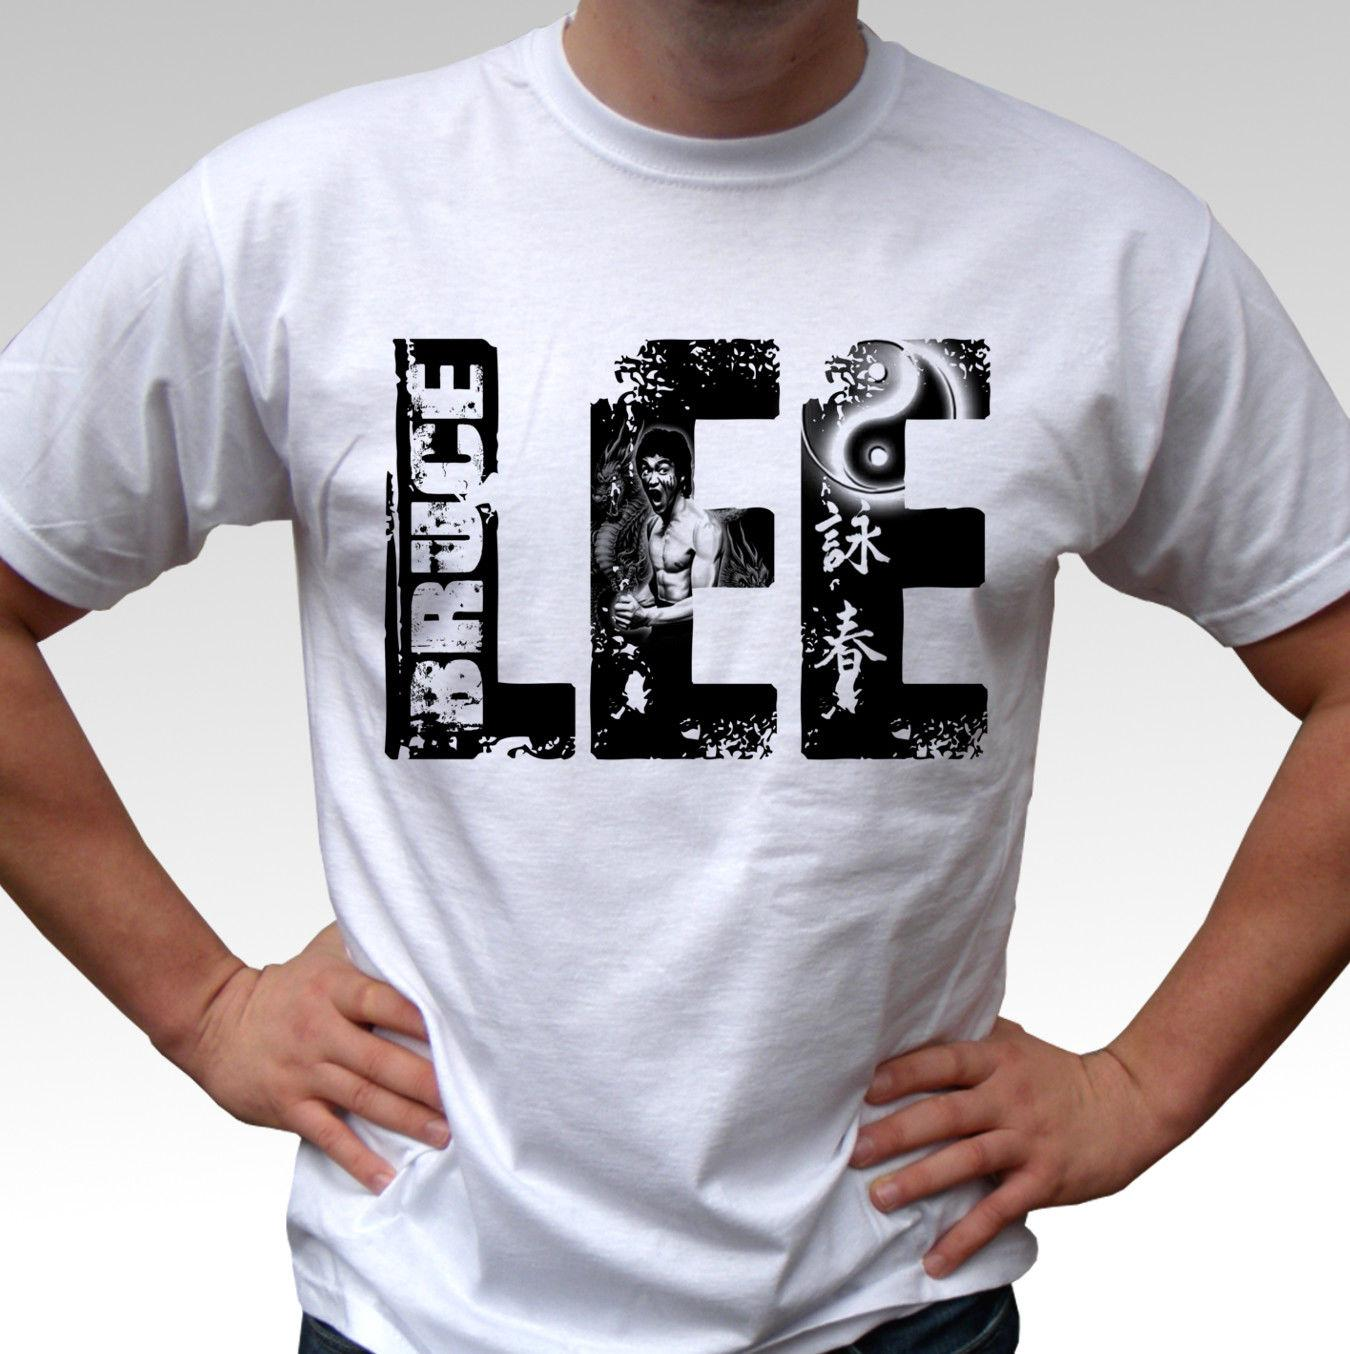 b338b1a5a4e LEE Bruce Lee White T Shirt Top Mens And Kids Sizes Funny Gift Short Short  Sleeve T Shirt Tops Round Neck Tees Cool Tshirts Retro T Shirts From ...